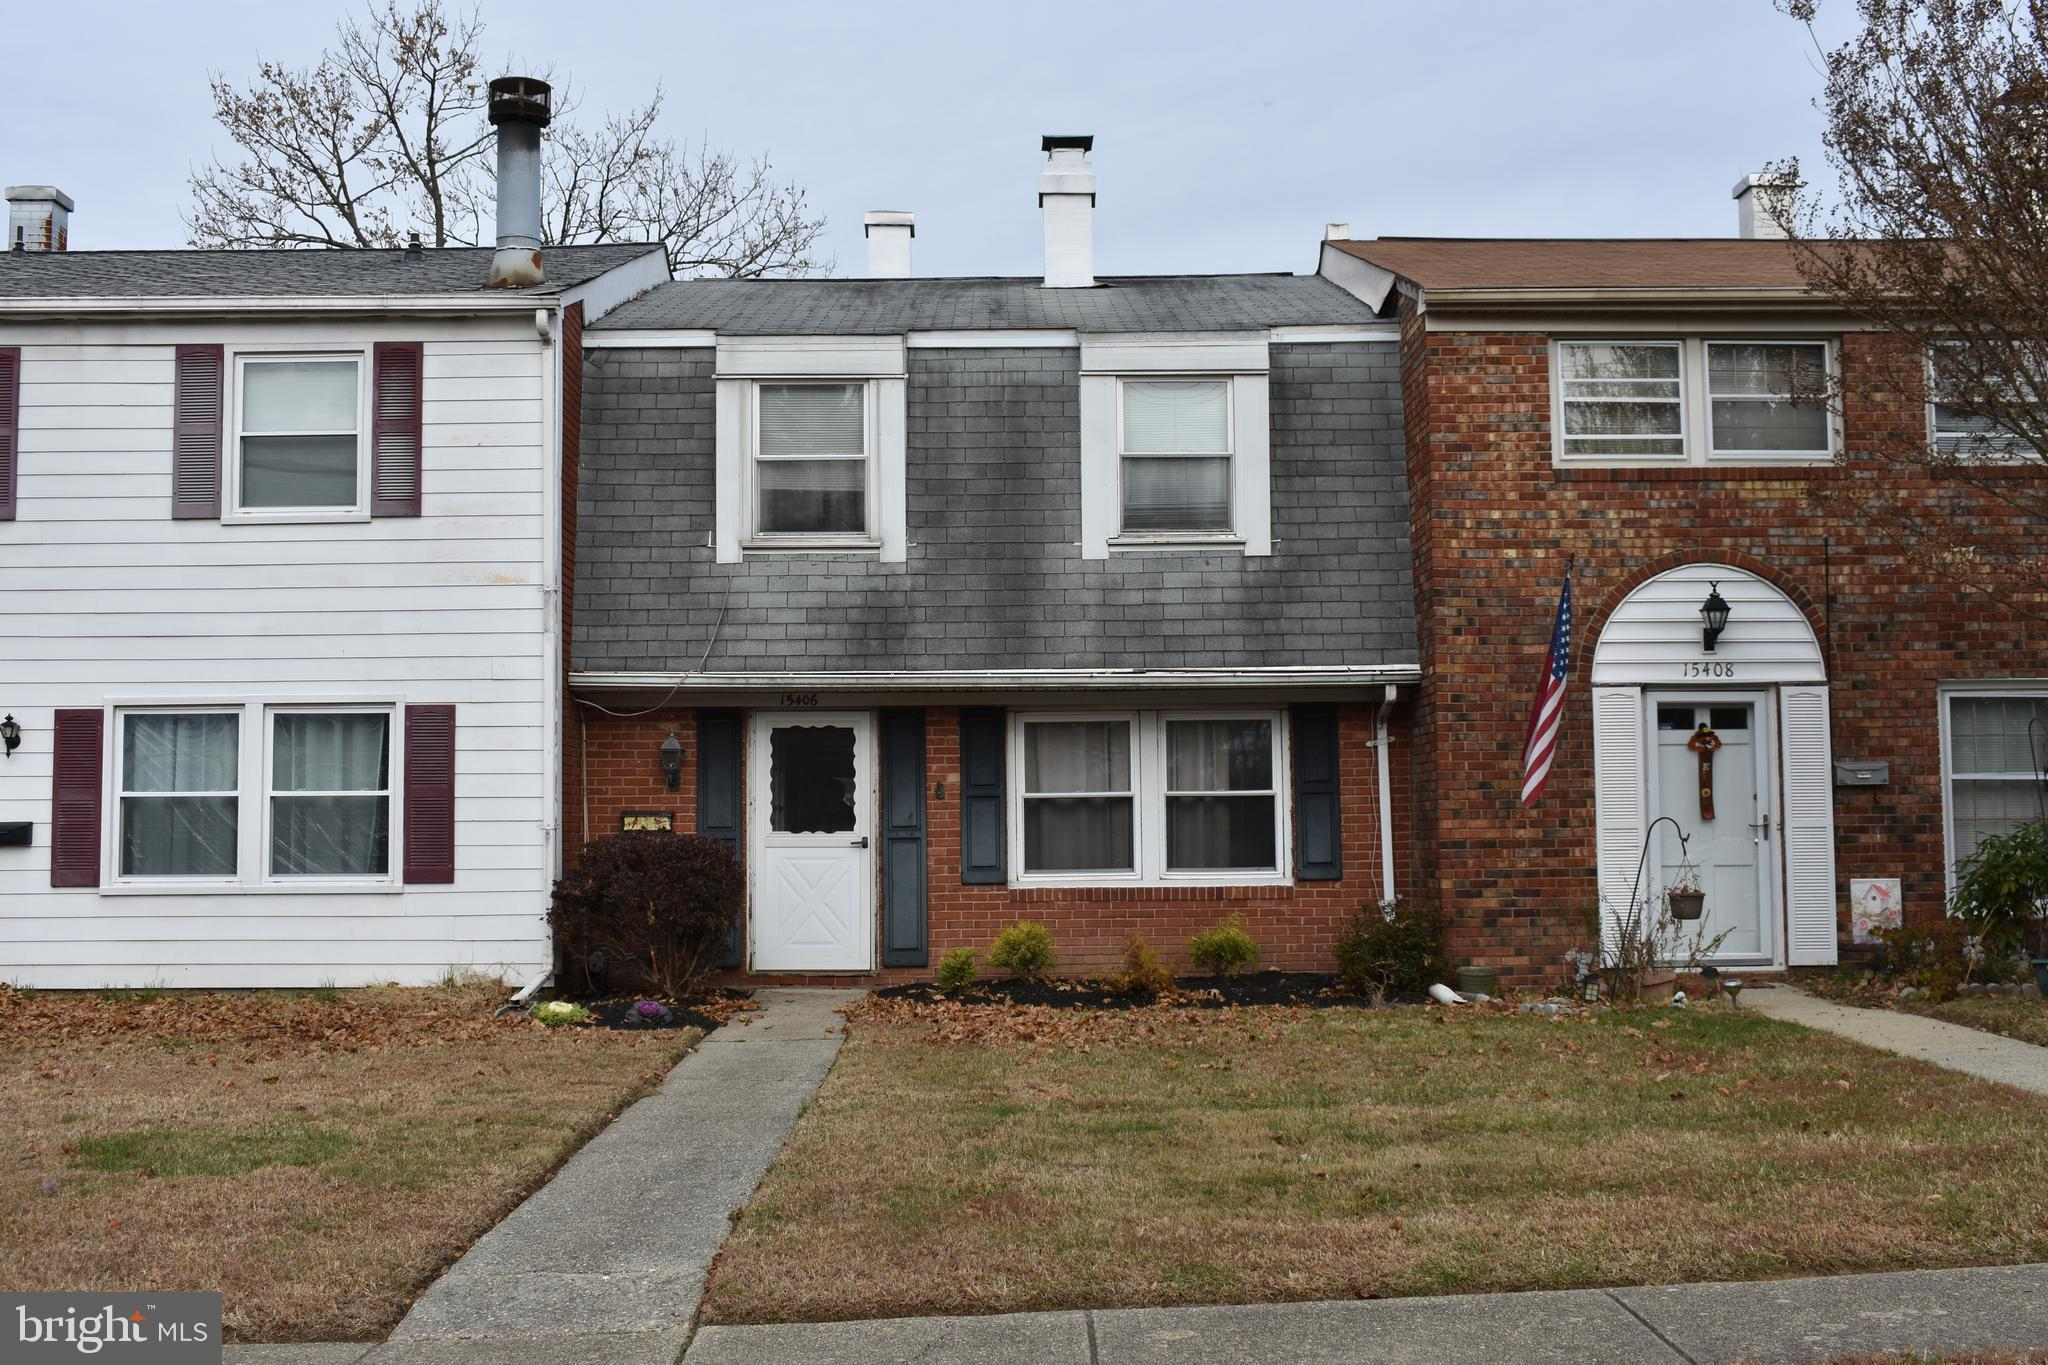 15406 ANNAPOLIS Rd, Bowie, MD, 20715